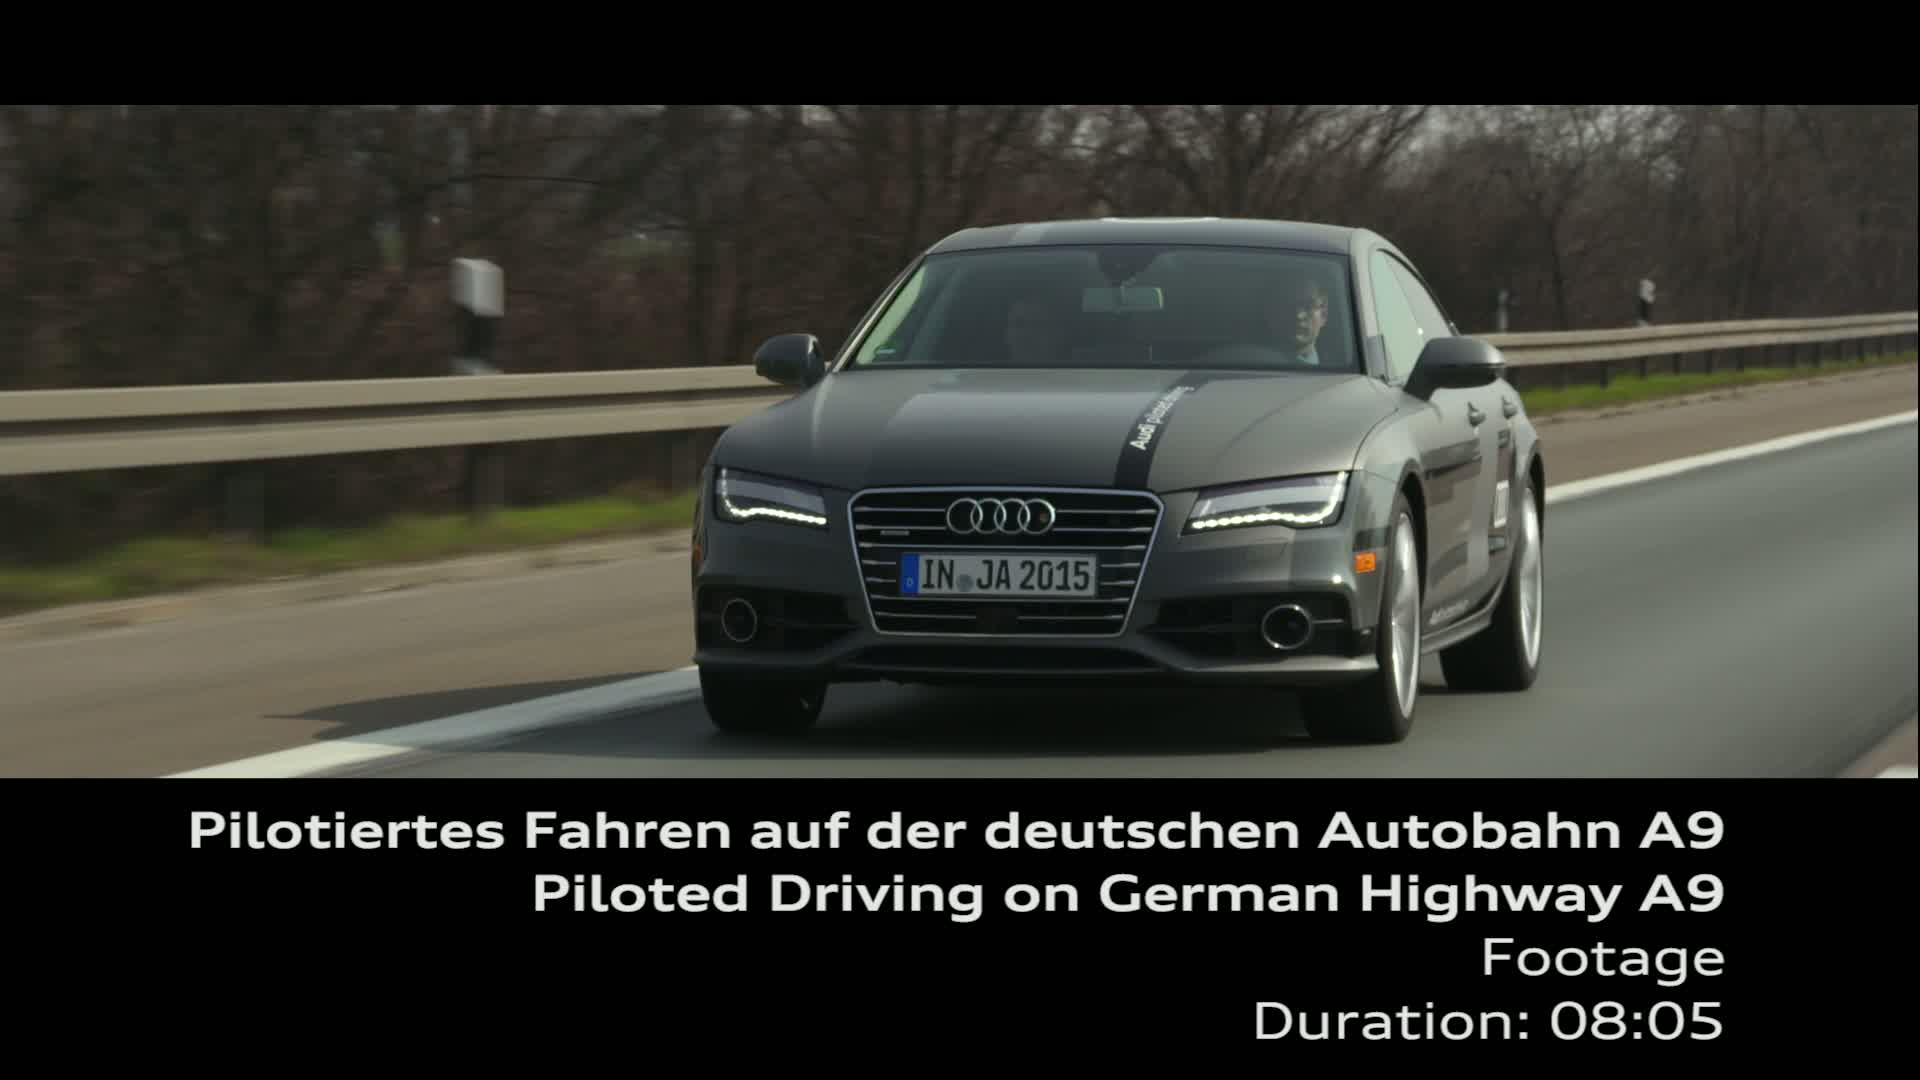 Test drive under realistic conditions on Autobahn A9 - Footage